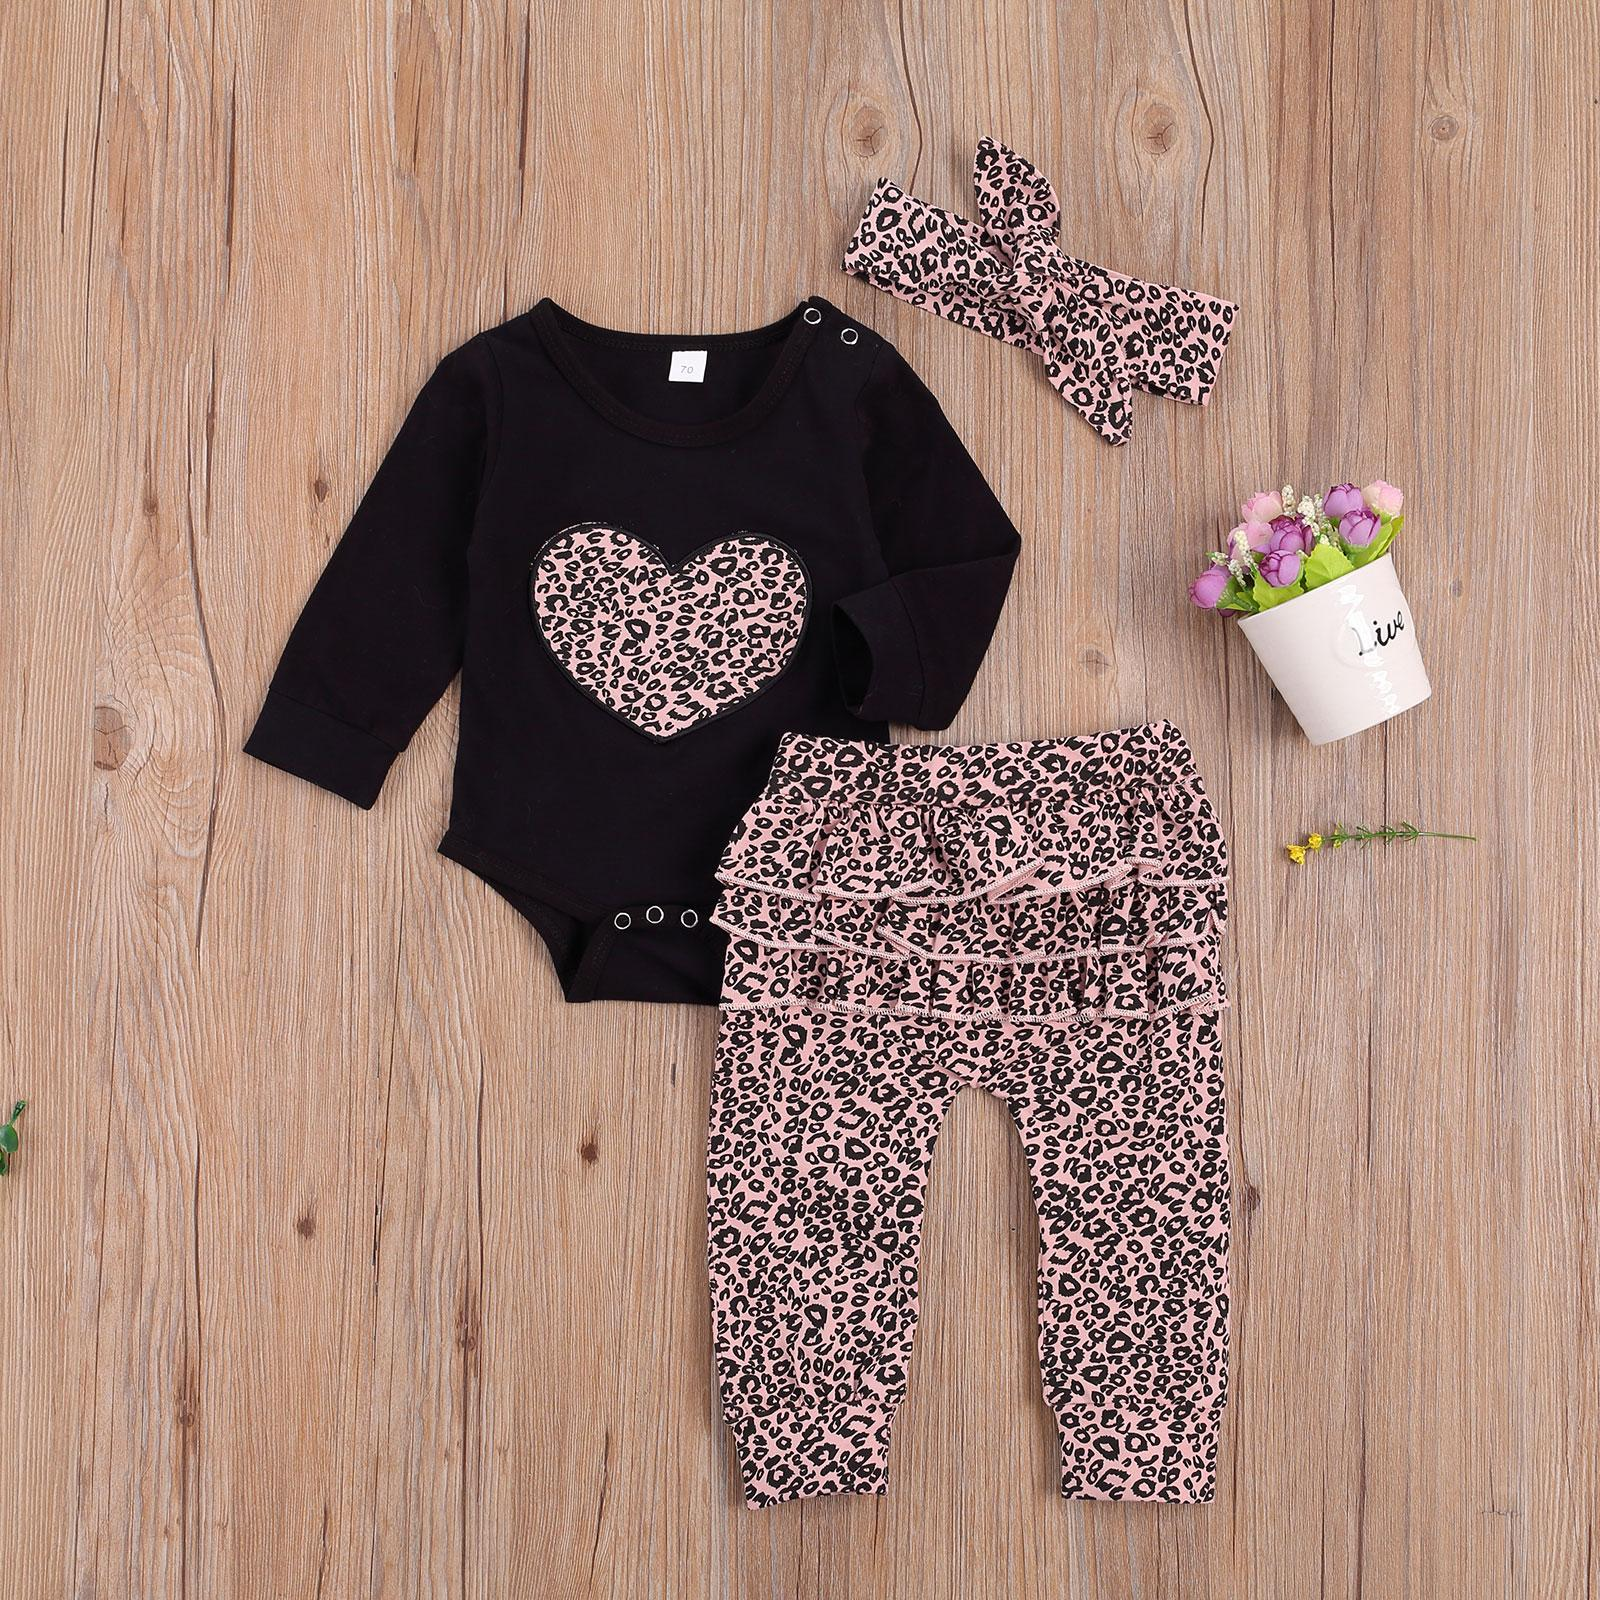 Baby Clothing New Born Cotton Neck Long Sleeve Heart Print Romper Loose Trousers Bow Headband 3 Pcs Leopard Outfits Clothes